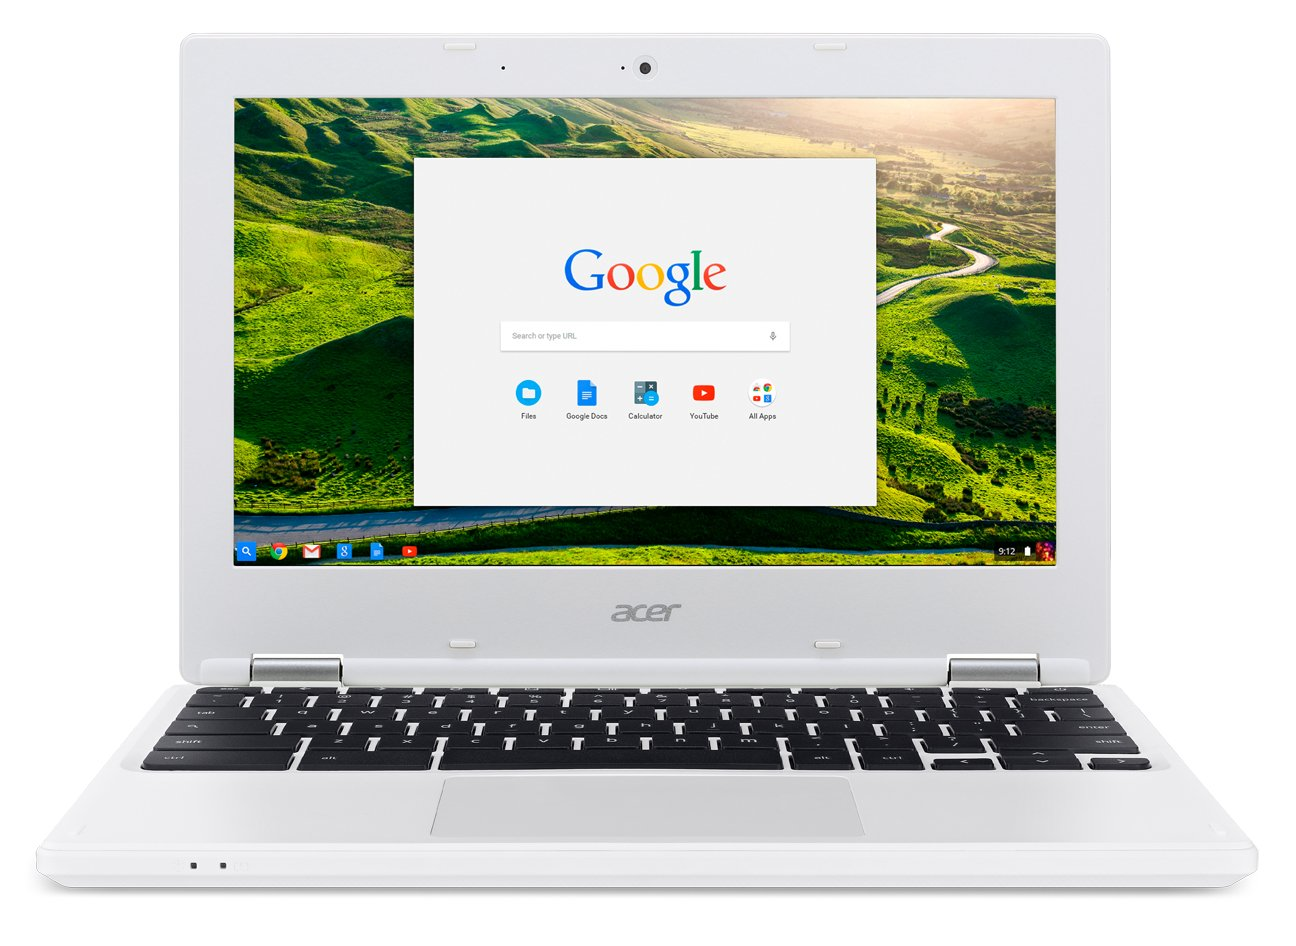 The Acer CB3-131 is one of the best Chromebook and most popular models on the market.